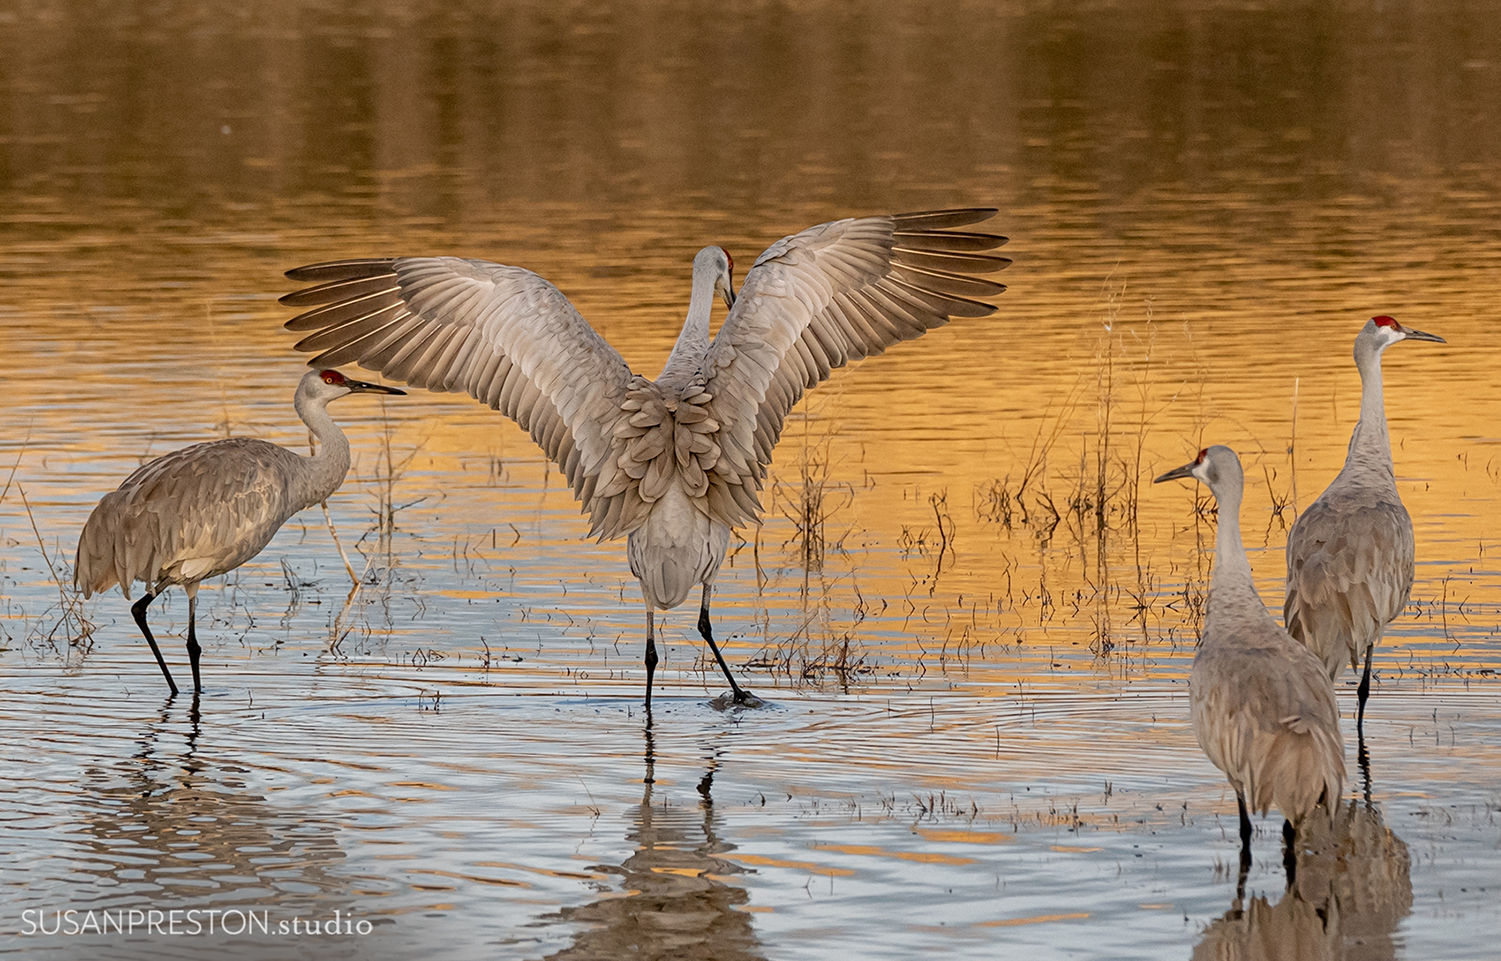 sandhill crane joyfully stretches her wings in the early morning light of the Bosque del Apache